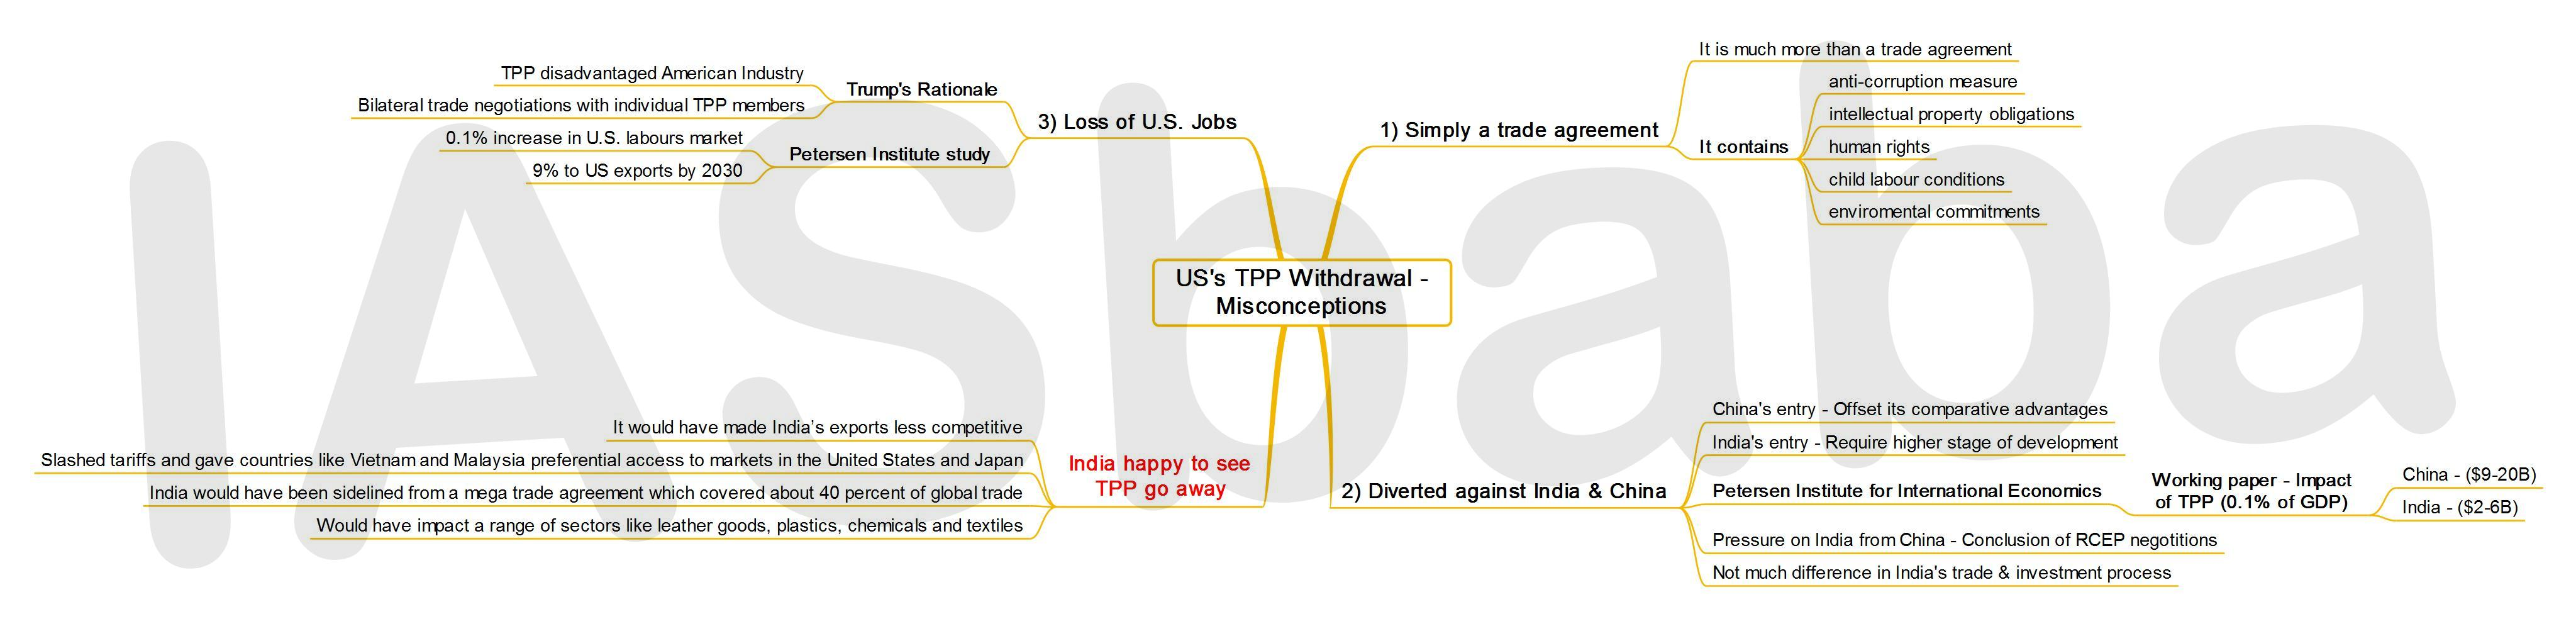 IASbaba's MINDMAP : Issue – US's TPP Withdrawal – Misconceptions